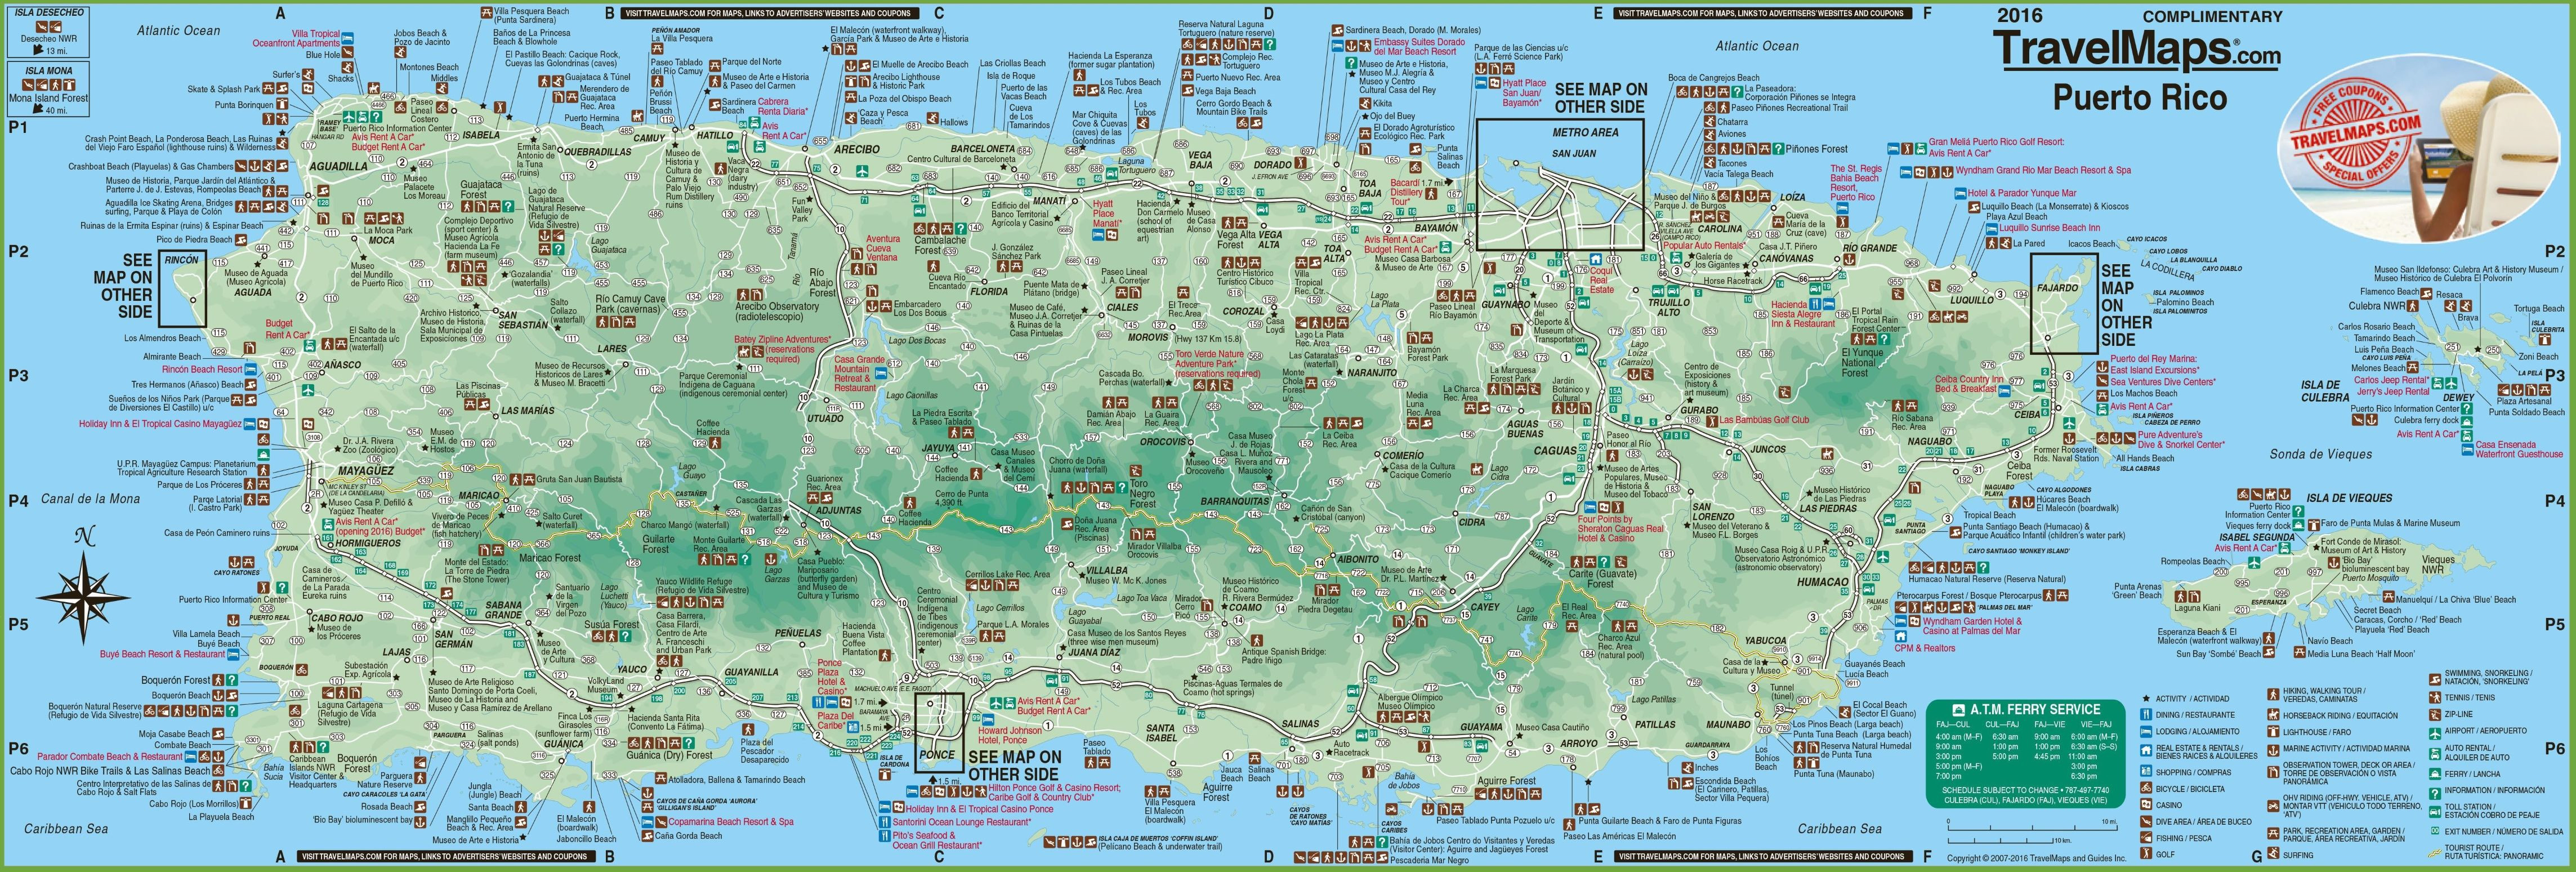 Printable Map Puerto Rico Luxury Dominican Republic Puerto Rico Map Recent Detailed Tourist Map